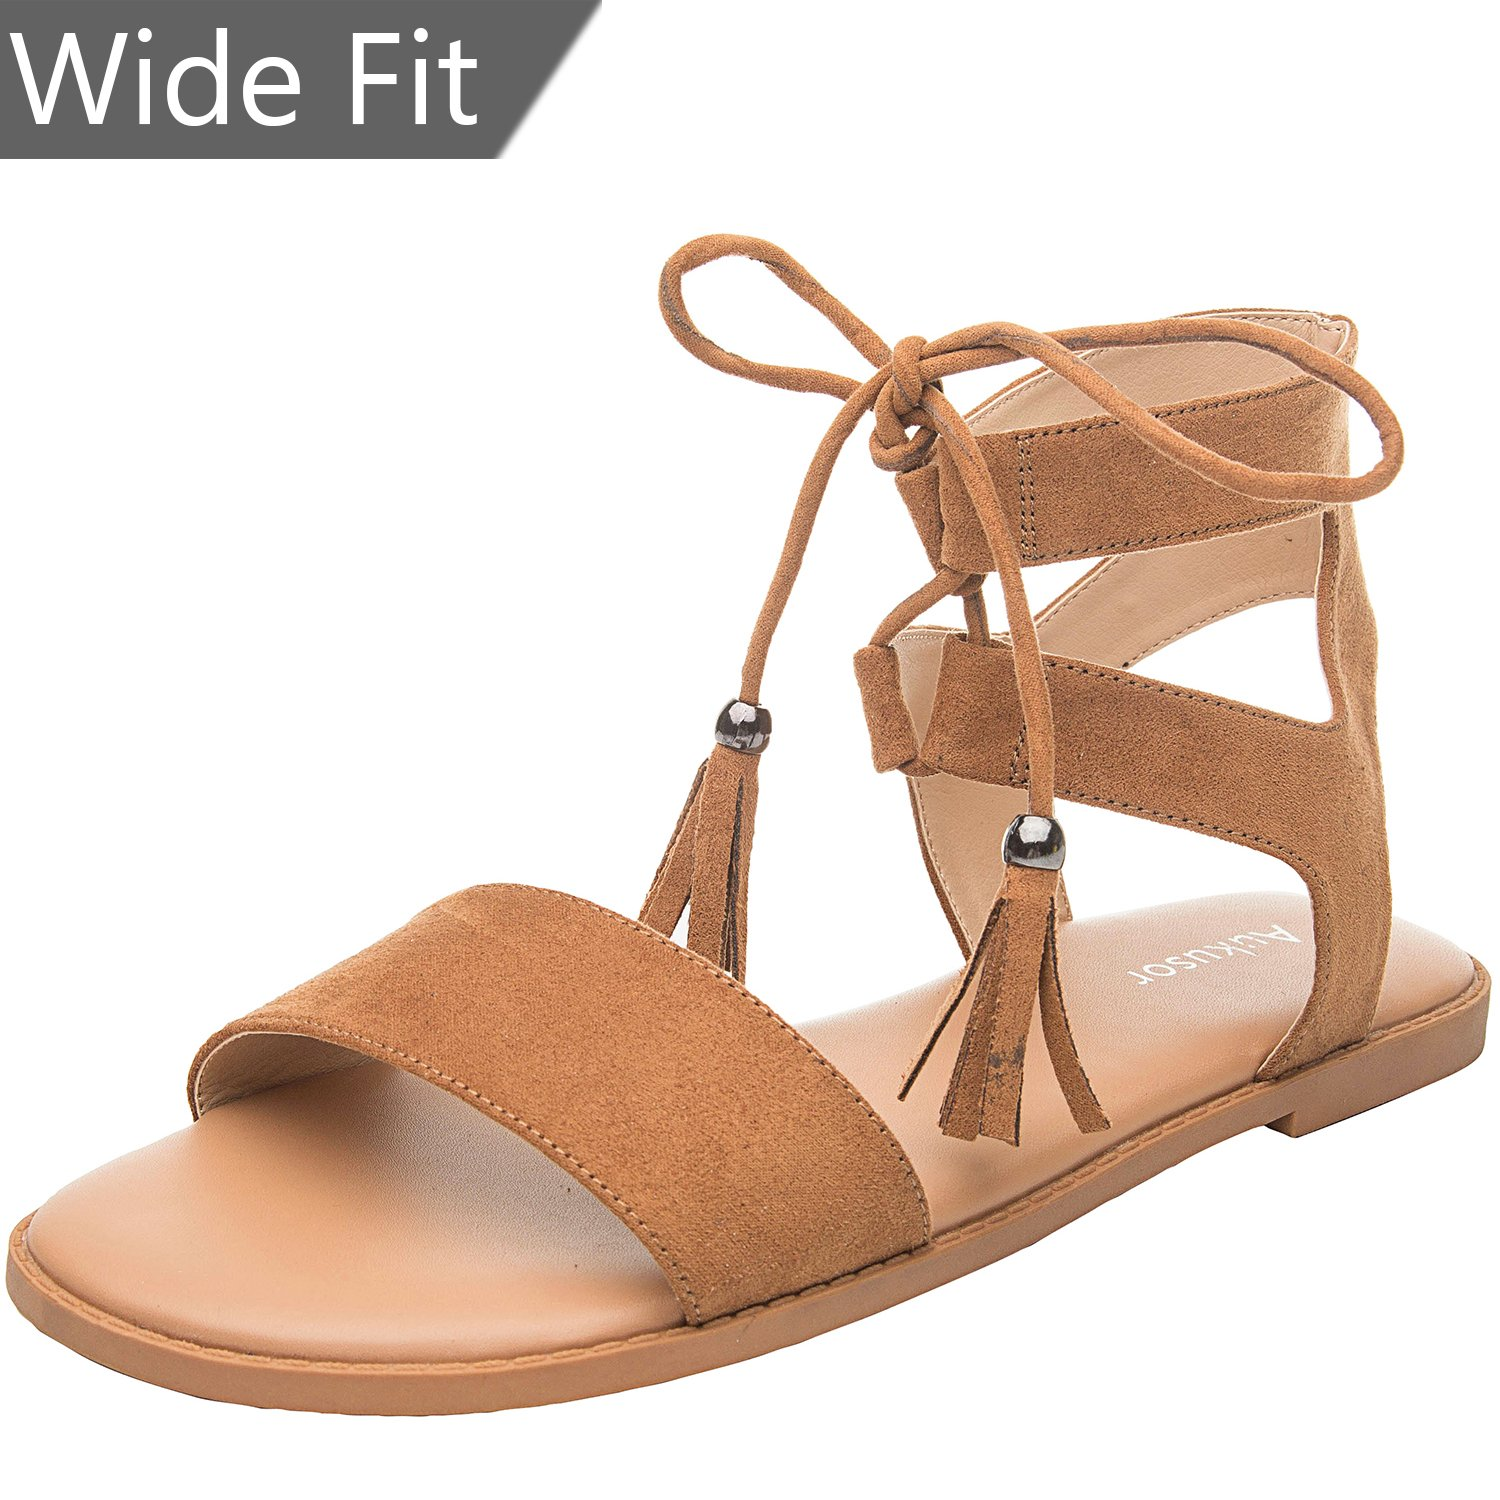 Women's Wide Width Flat Sandals - Comfortable Lace up Ankle Strap Casual Shoes.(180308 Brown,8WW)